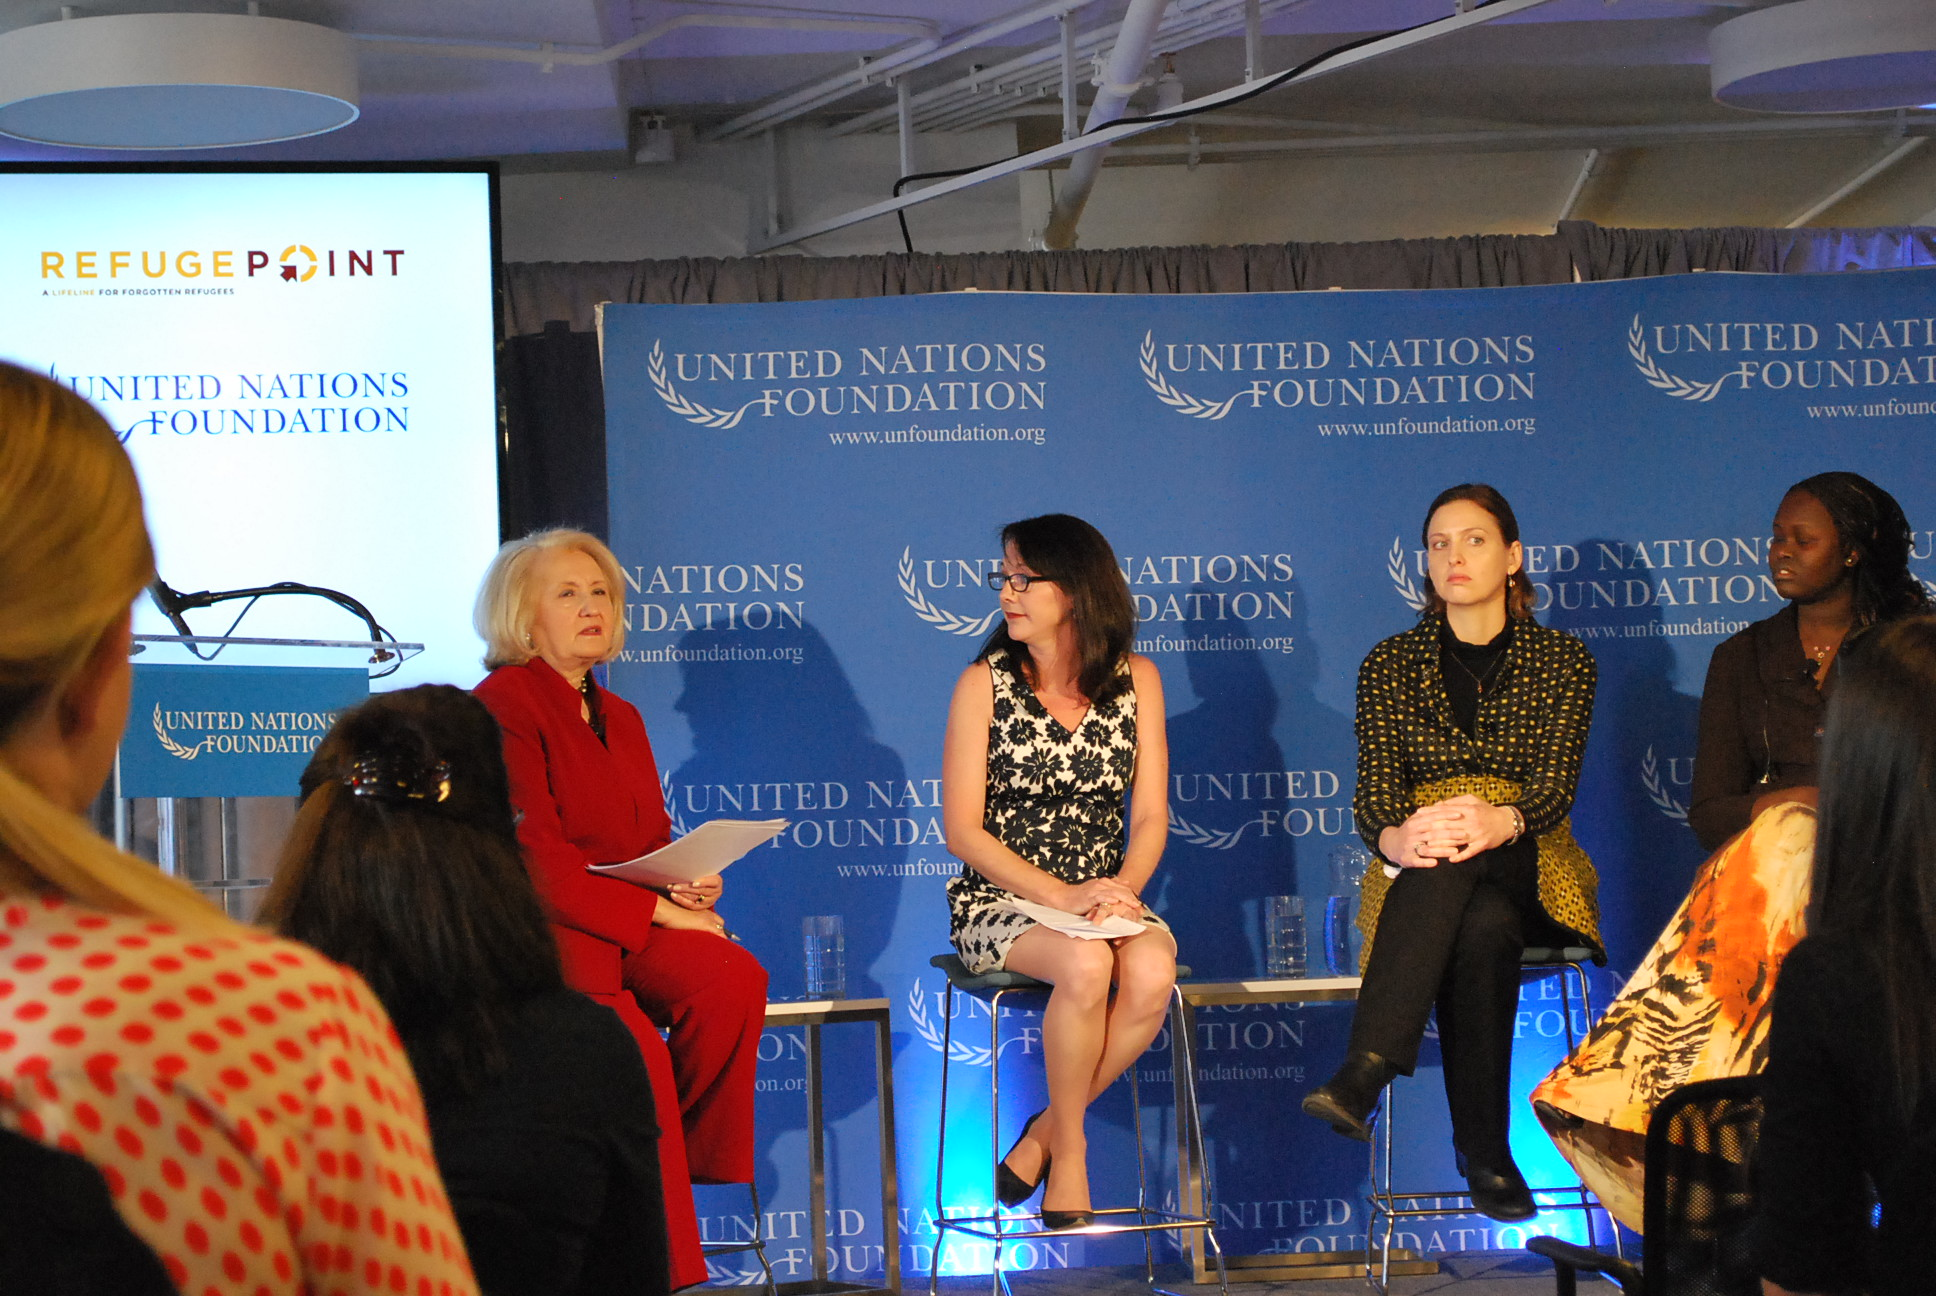 UN Foundation event Women in Fragile States with panel and moderator.